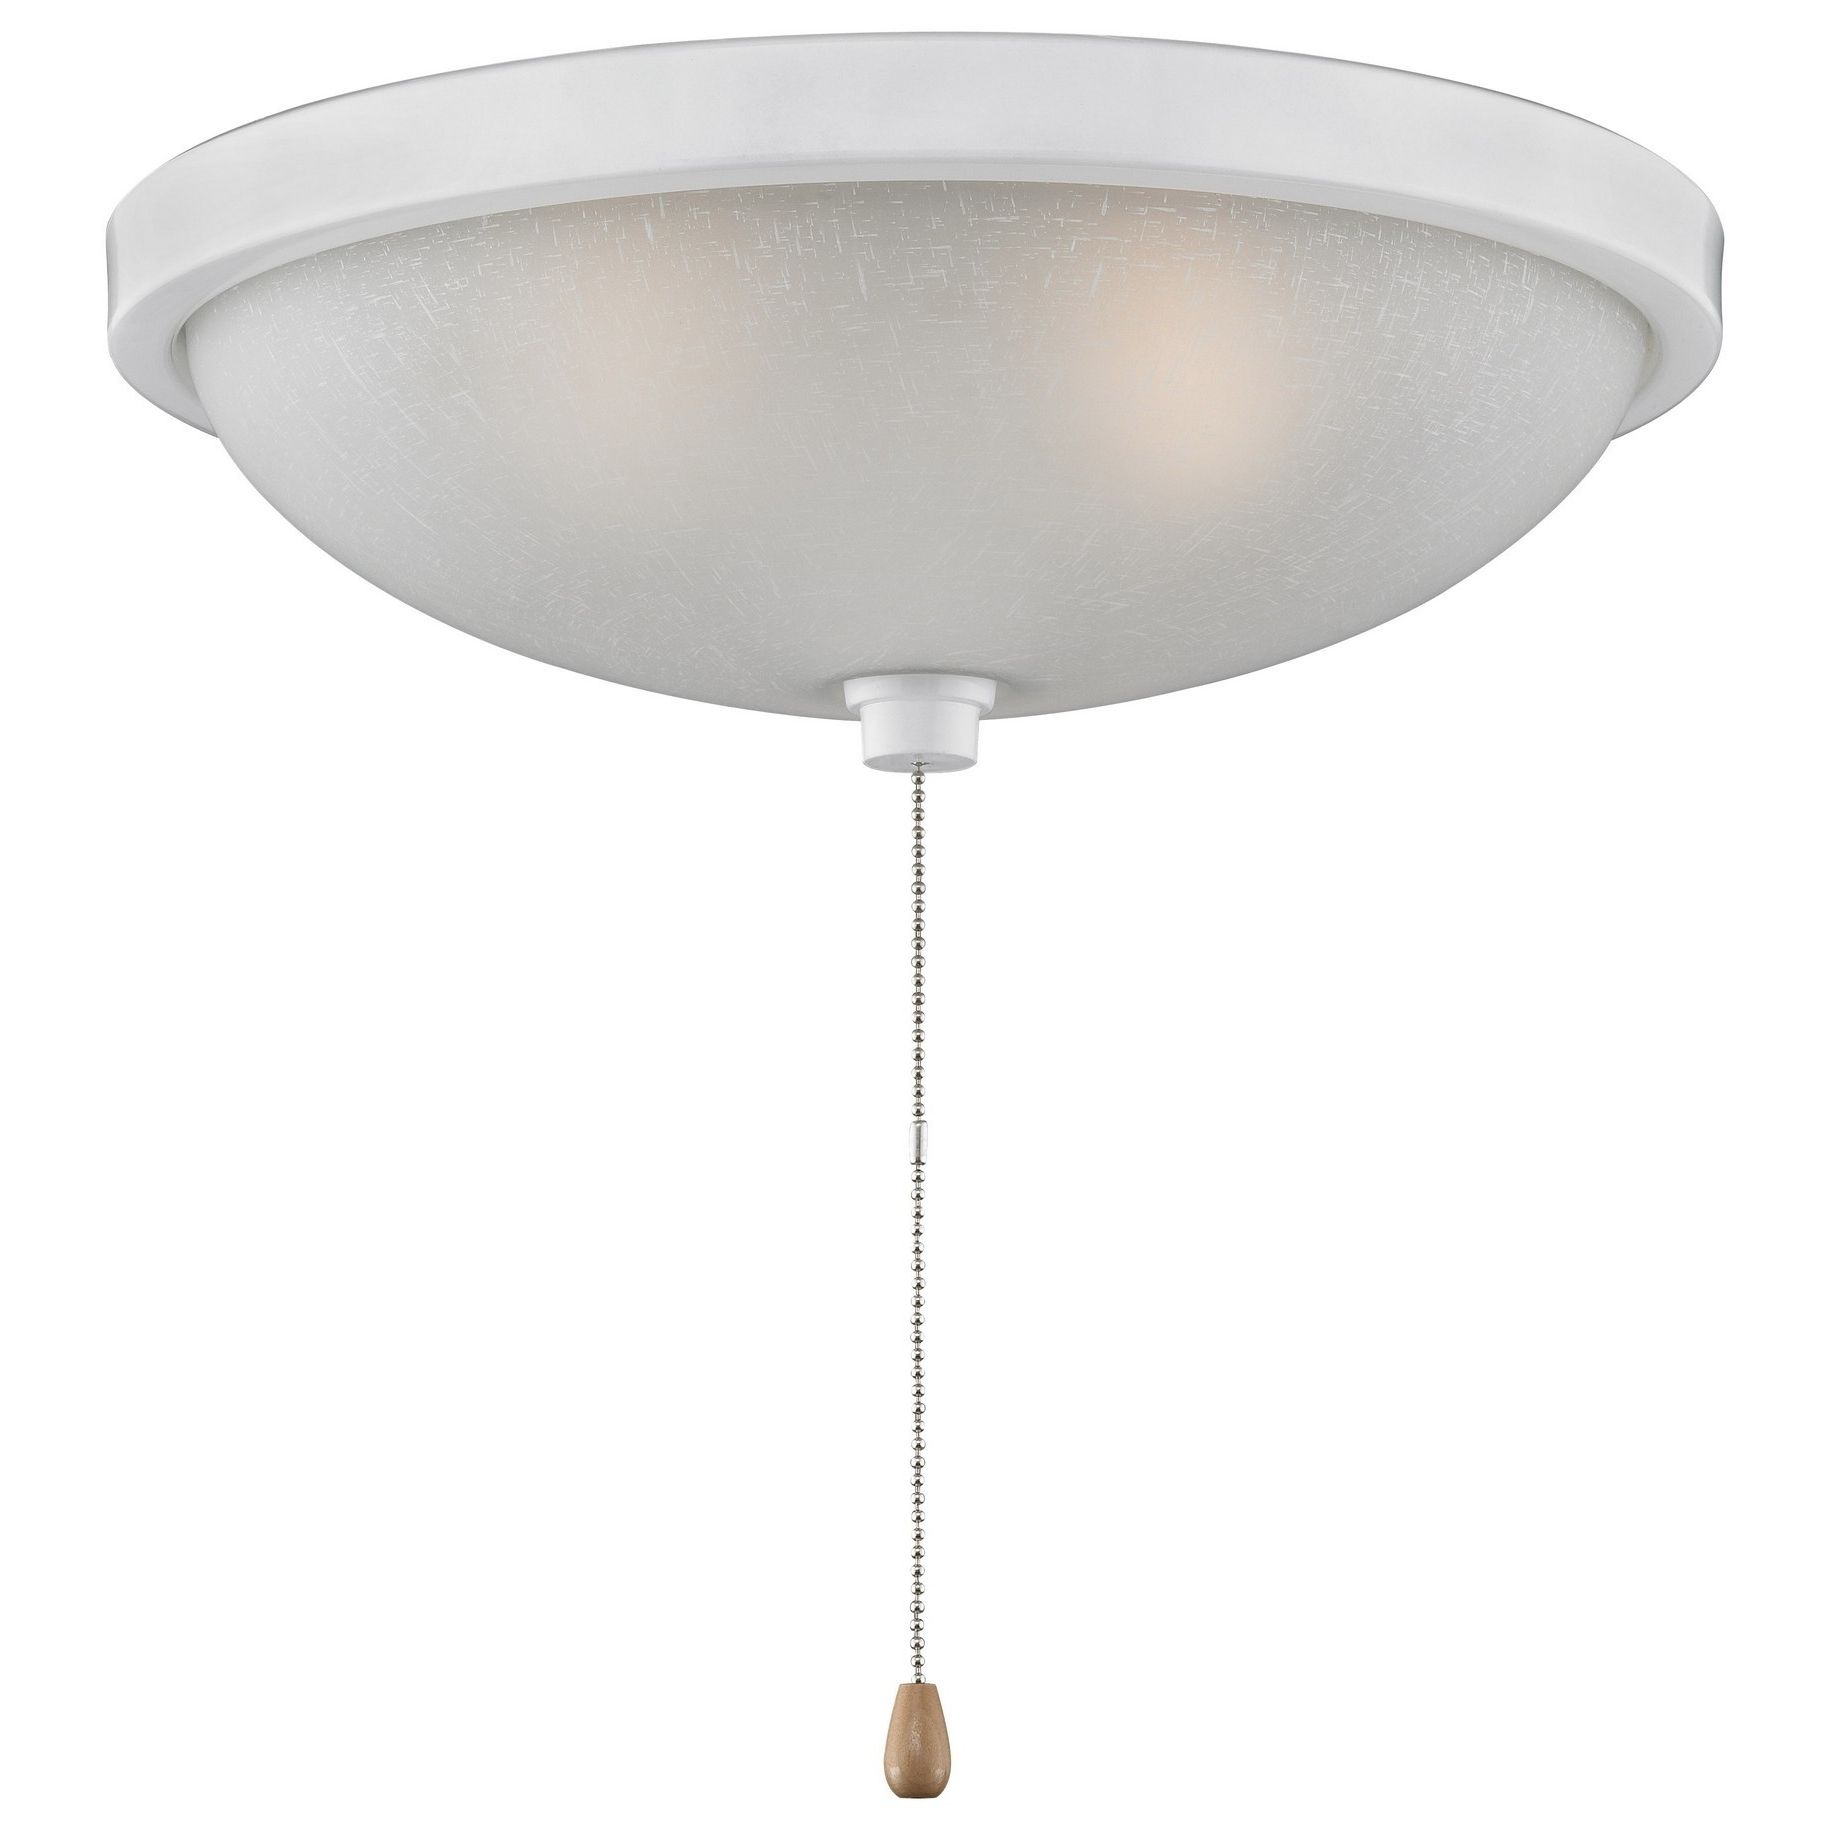 Pull Chain Ceiling Light Best With Switch On Outdoor Fans Fan For 2019 Outdoor Ceiling Fans With Pull Chains (View 17 of 20)